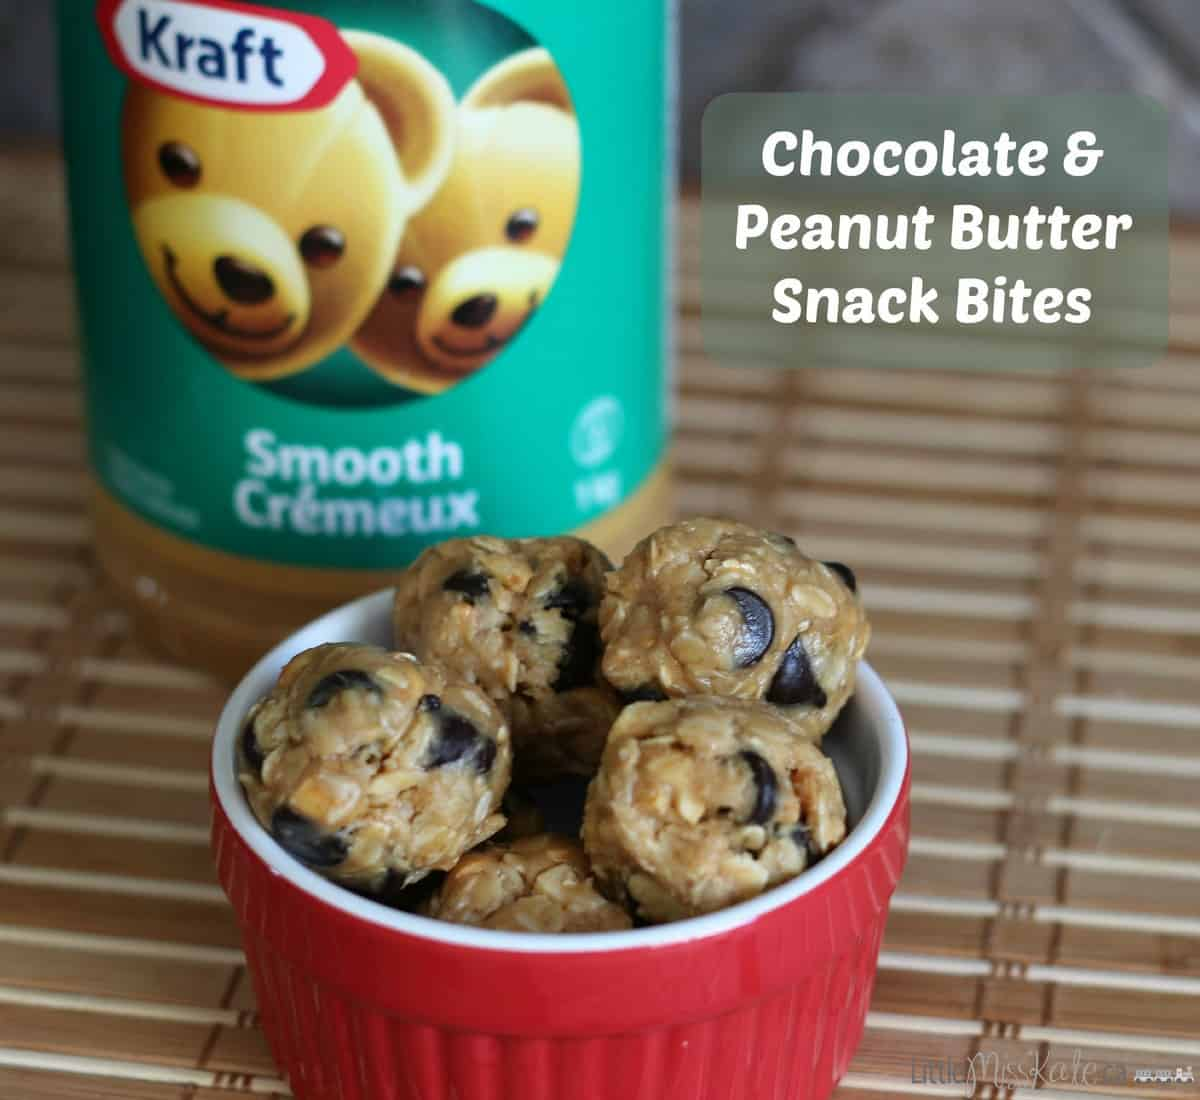 Chocolate and Peanut Butter Snack Bites Recipe